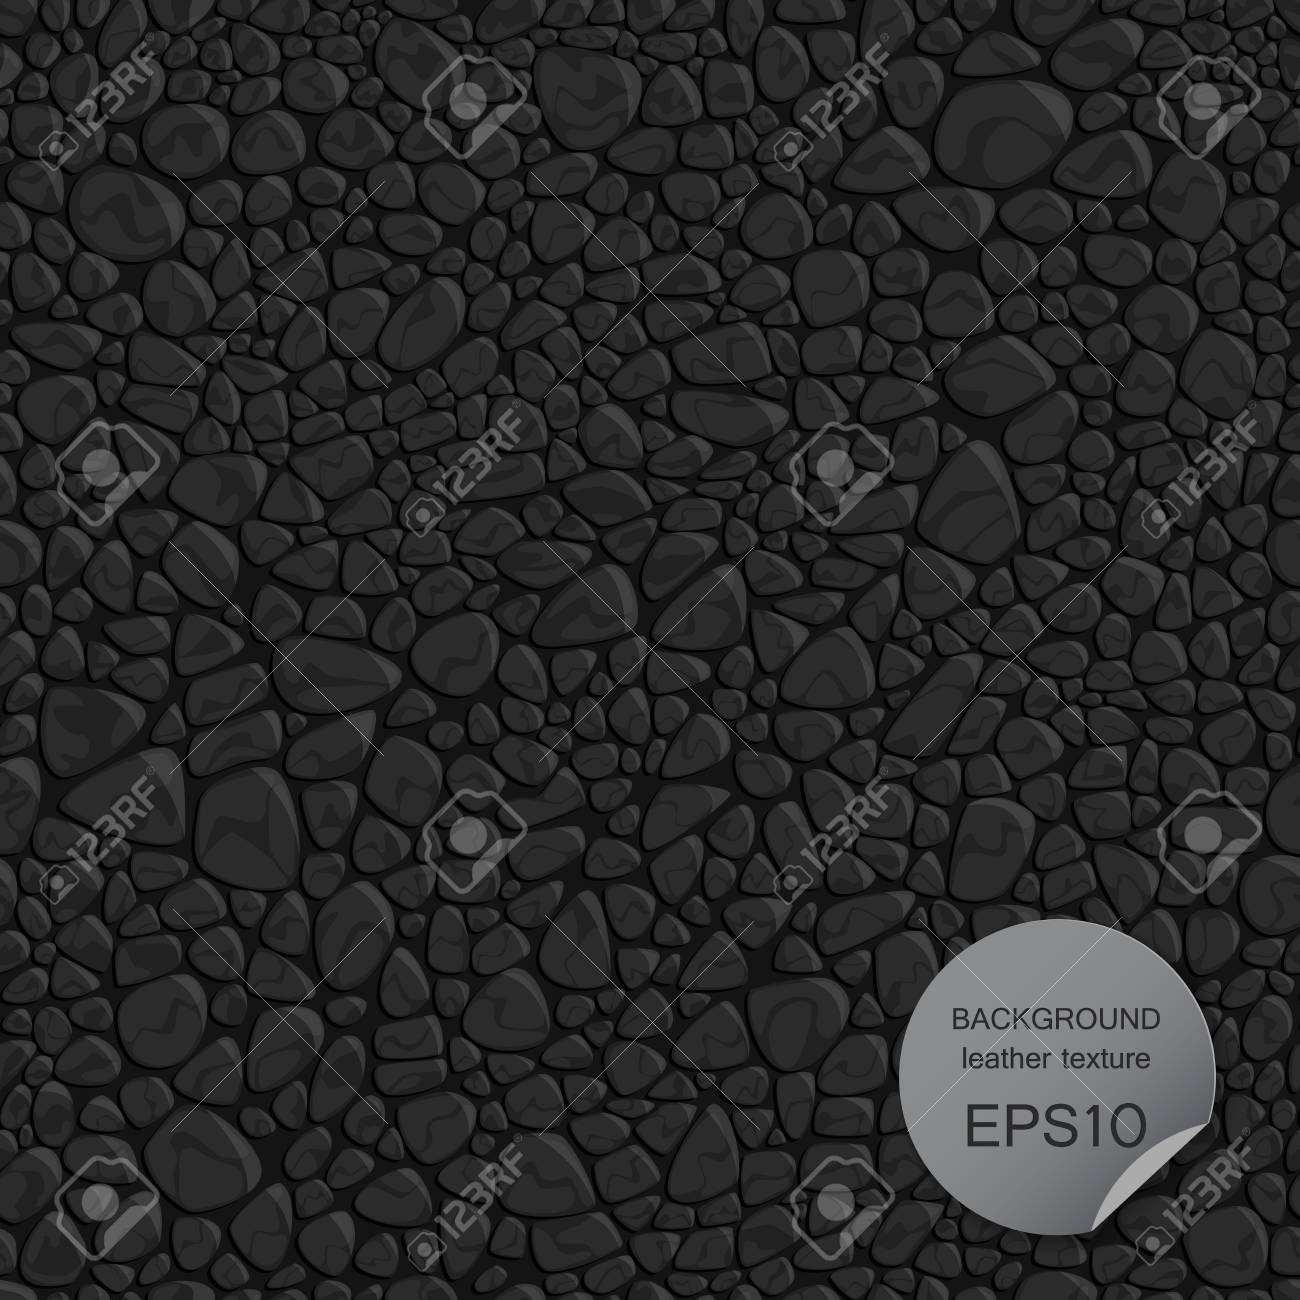 Seamless background leather texture. Vector illustration EPS10. - 67632915